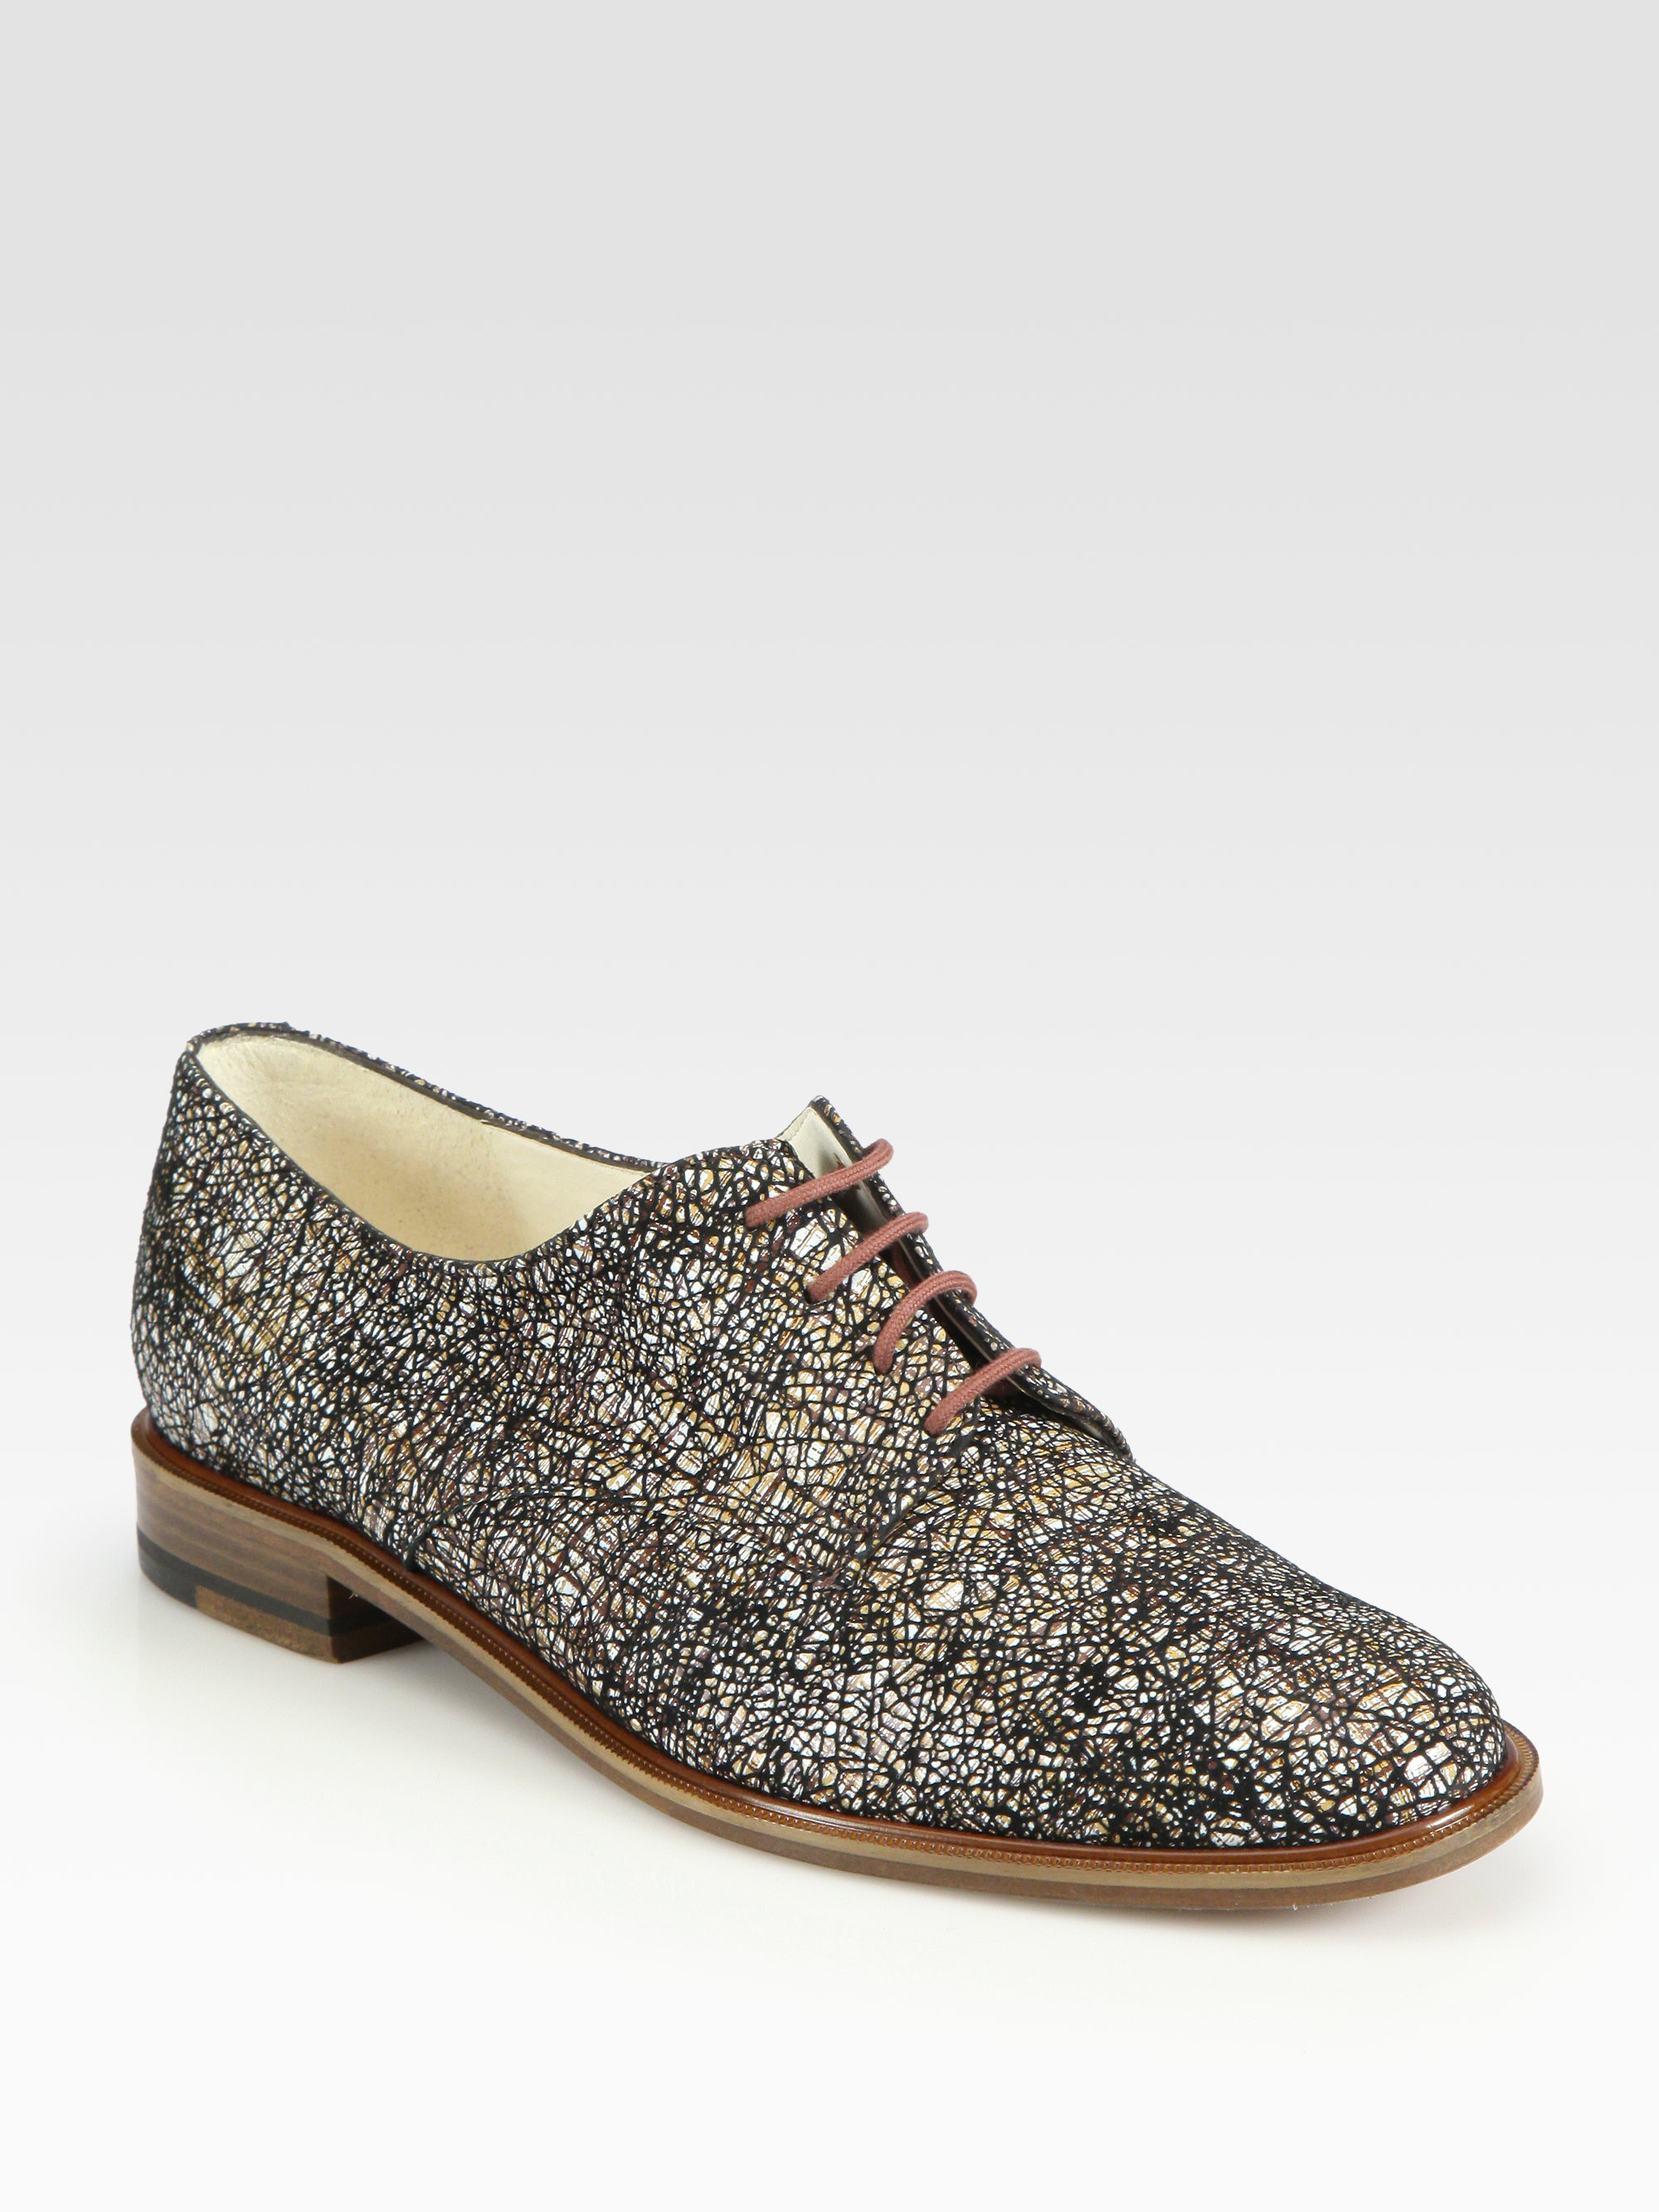 ad29c01c2 Lyst - Robert Clergerie Printed Leather Oxford Laceup Flats in Brown